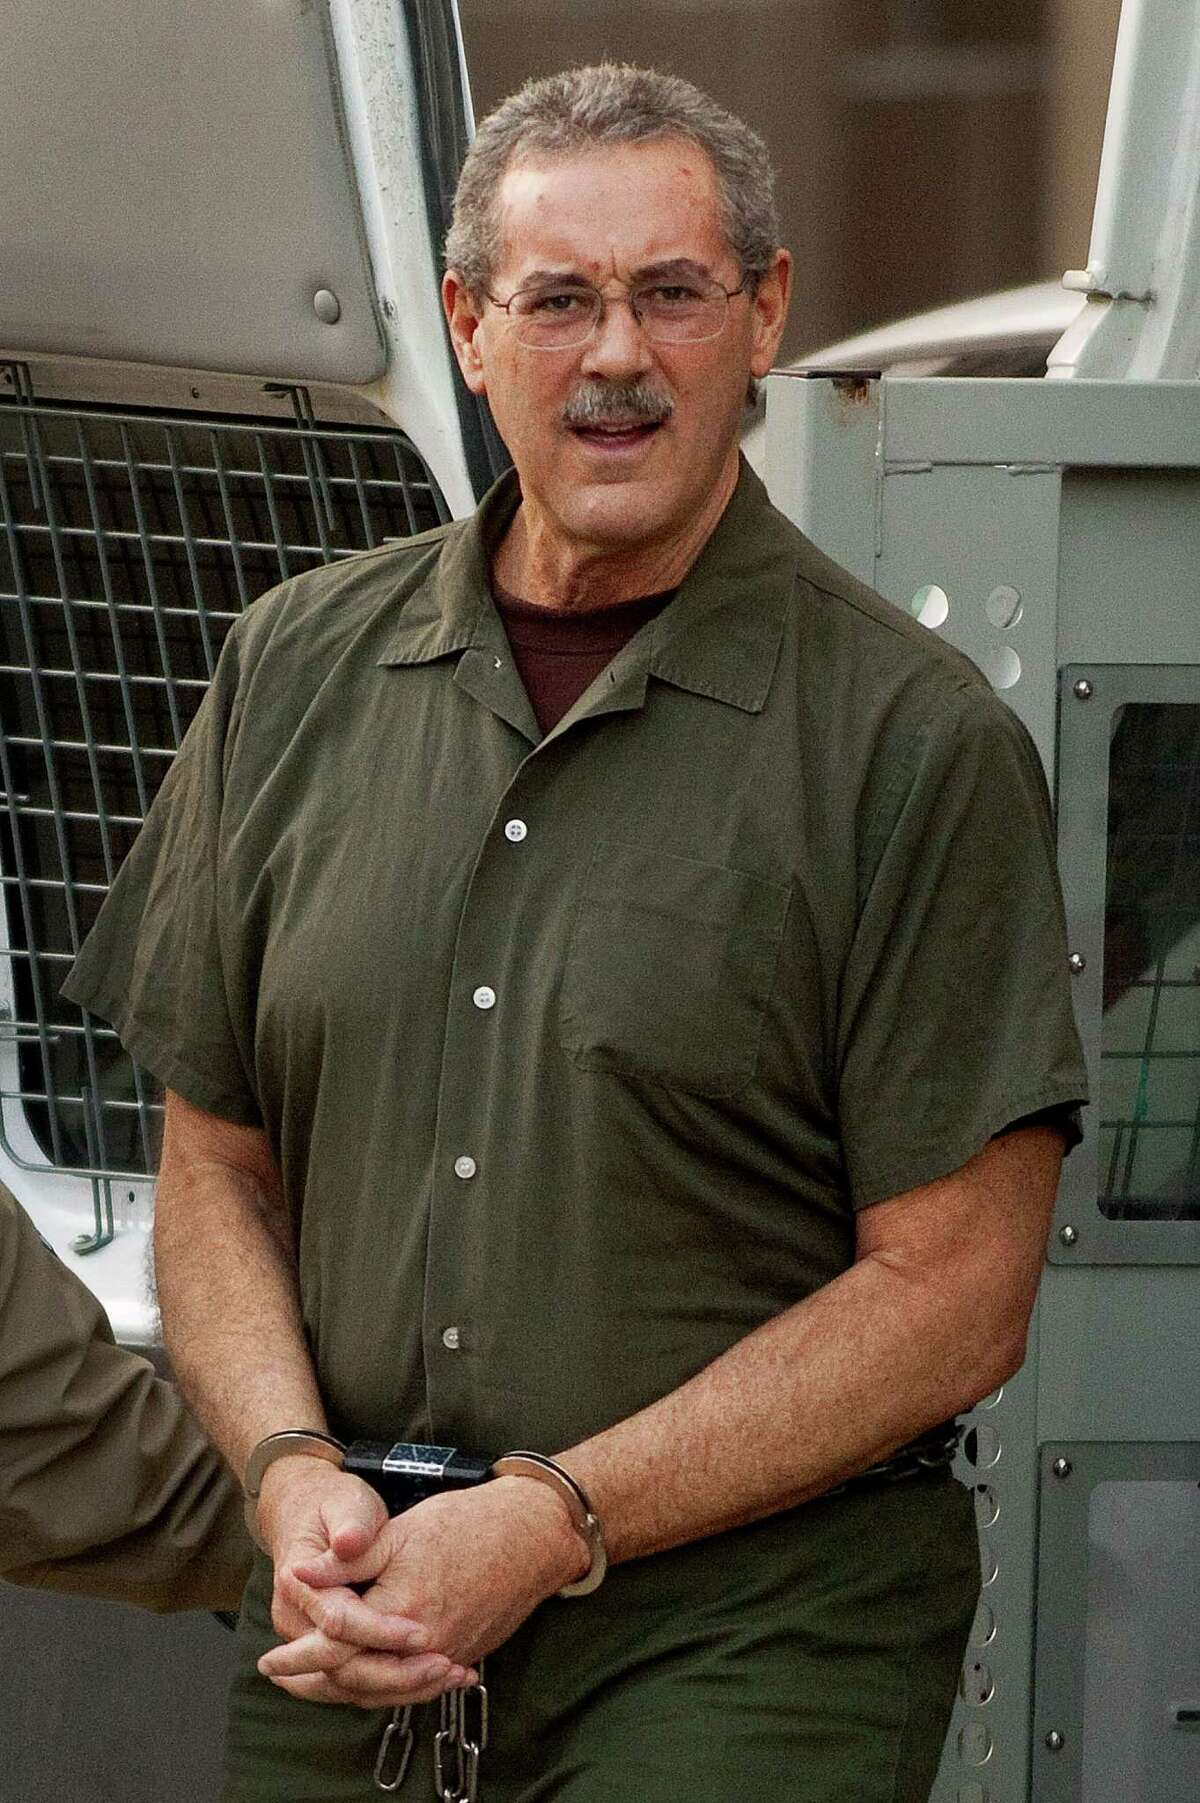 """R. Allen Stanford Founder and CEO Sentence: 110 years Indicted financier R. Alle n Stanford, accused of leading a $7 billion investment fraud scheme, arrives at the Bob Casey Federal Courthouse in Houston, Texas, U.S., on Monday, March 5, 2012. Stanford """"flushed"""" investor money away on failing businesses, yachts and cricket tournaments, prosecutors told jurors who began deliberations on whether the Texas financier led a massive Ponzi scheme. Photographer: F. Carter Smith/Bloomberg *** Local Caption *** R. Allen Stanford"""